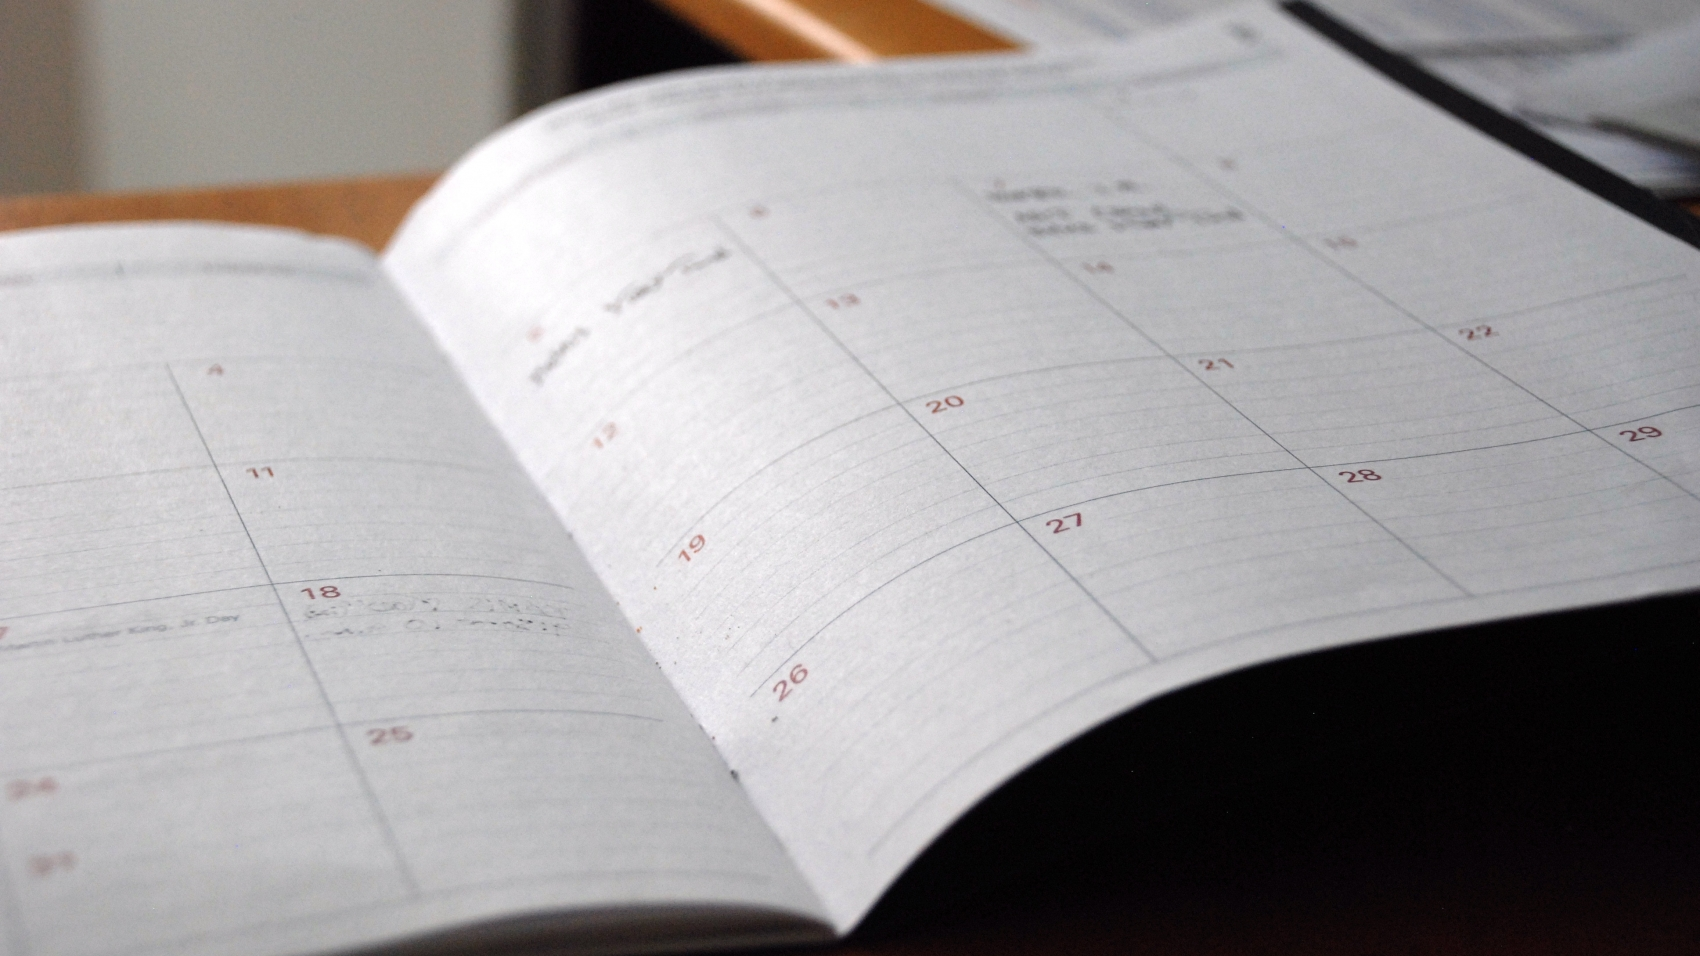 image following the calendar organization tips